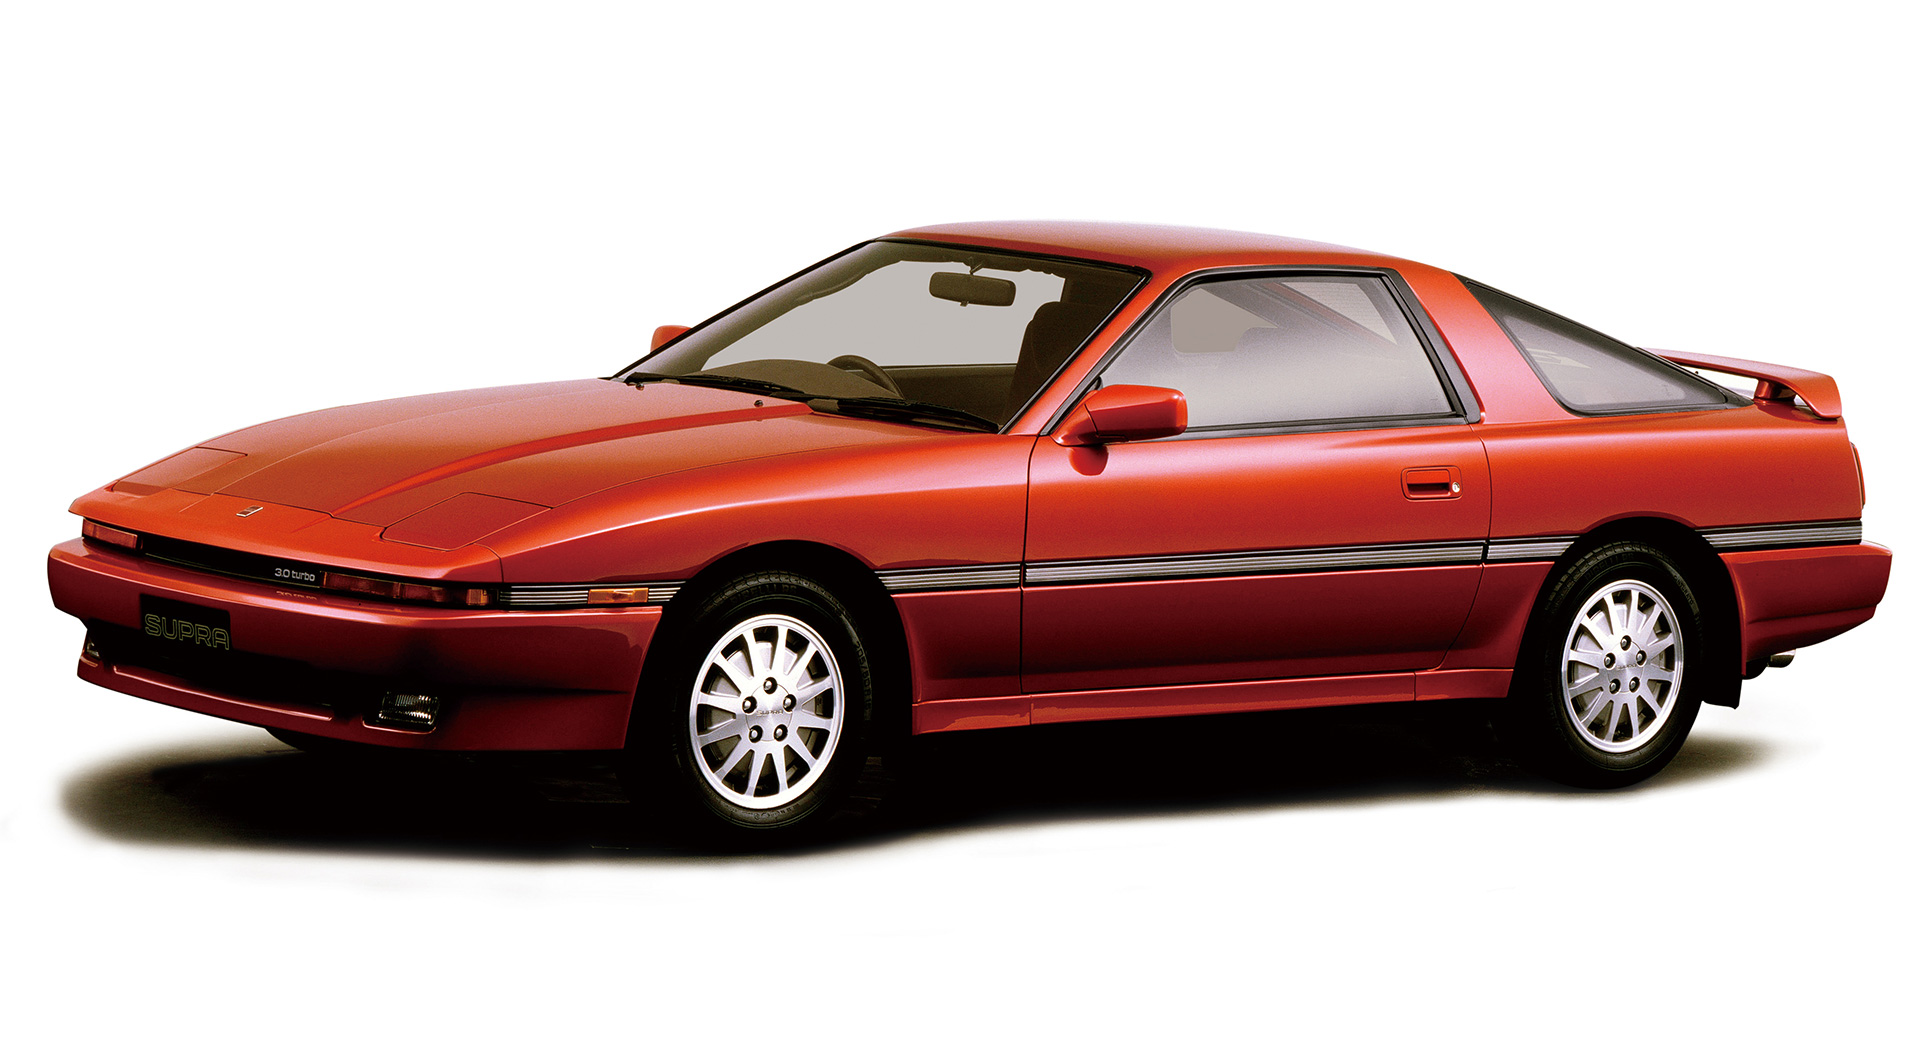 Toyota to Reproduce and Sell Additional Spare Parts for the A70 and A80 SupraGR Heritage Parts Project - Image 2